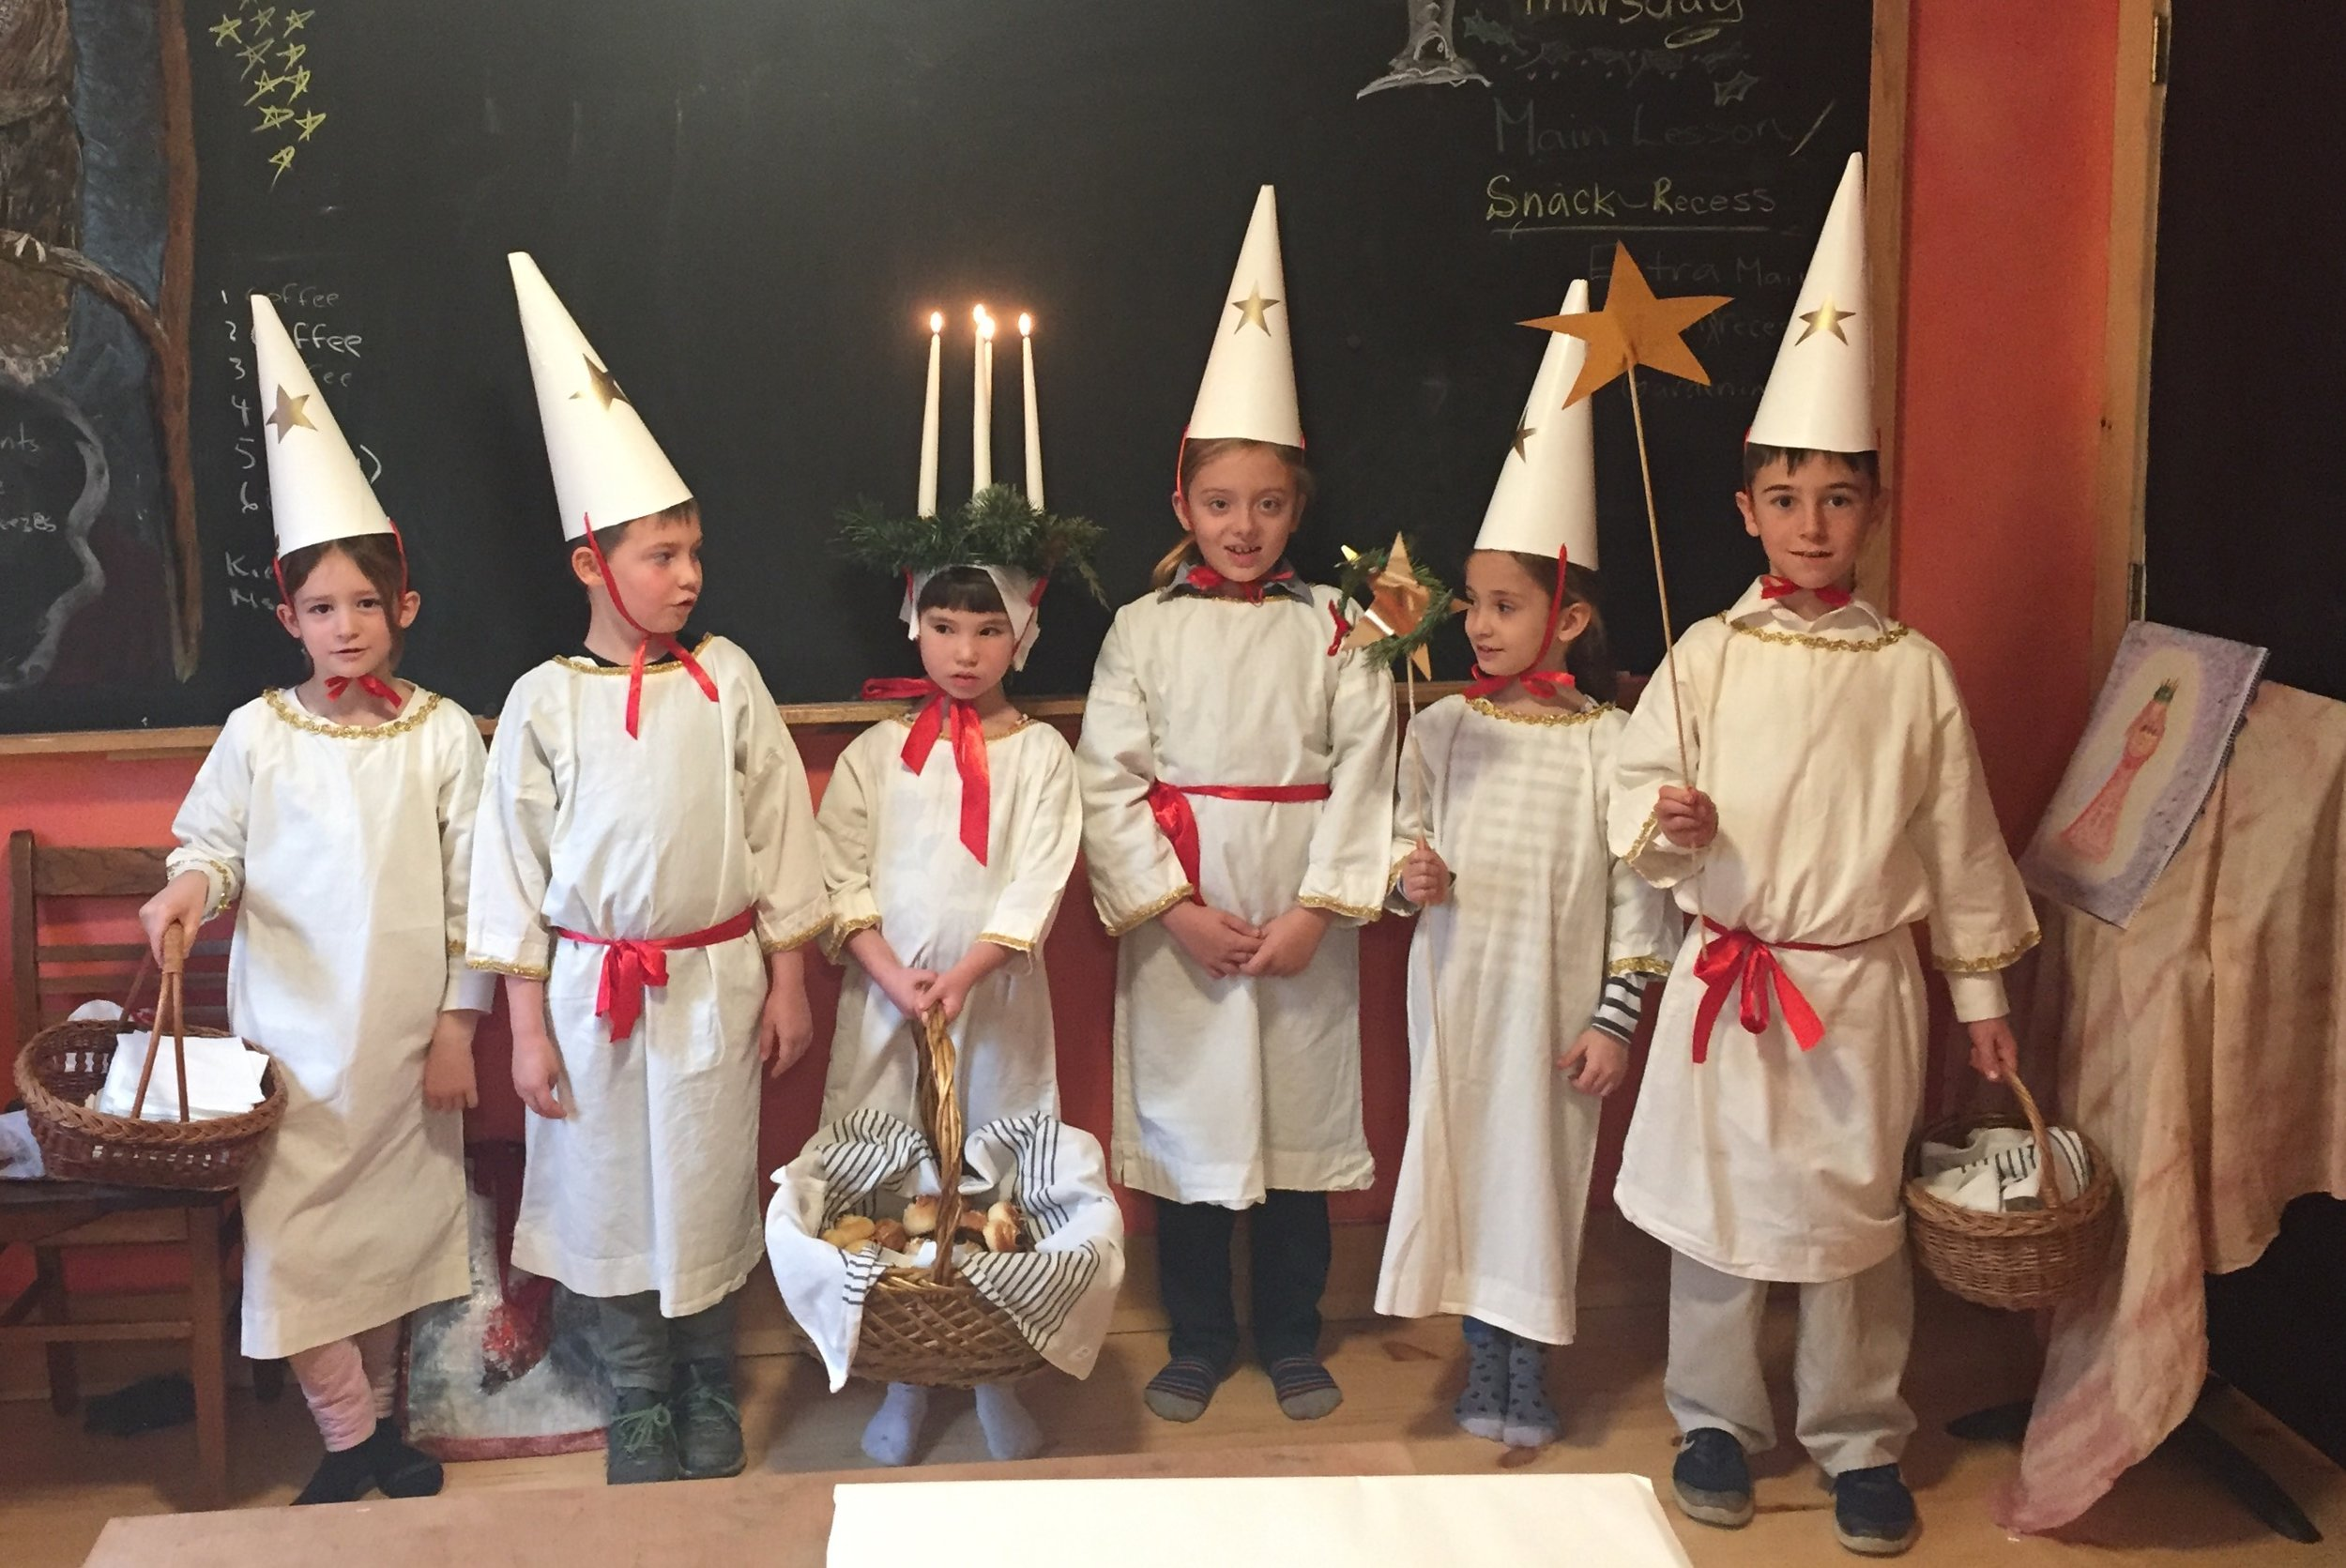 Santa Lucia is a Swedish traditional festival. Children bake special buns and share them with the school as a gesture of caring for others.